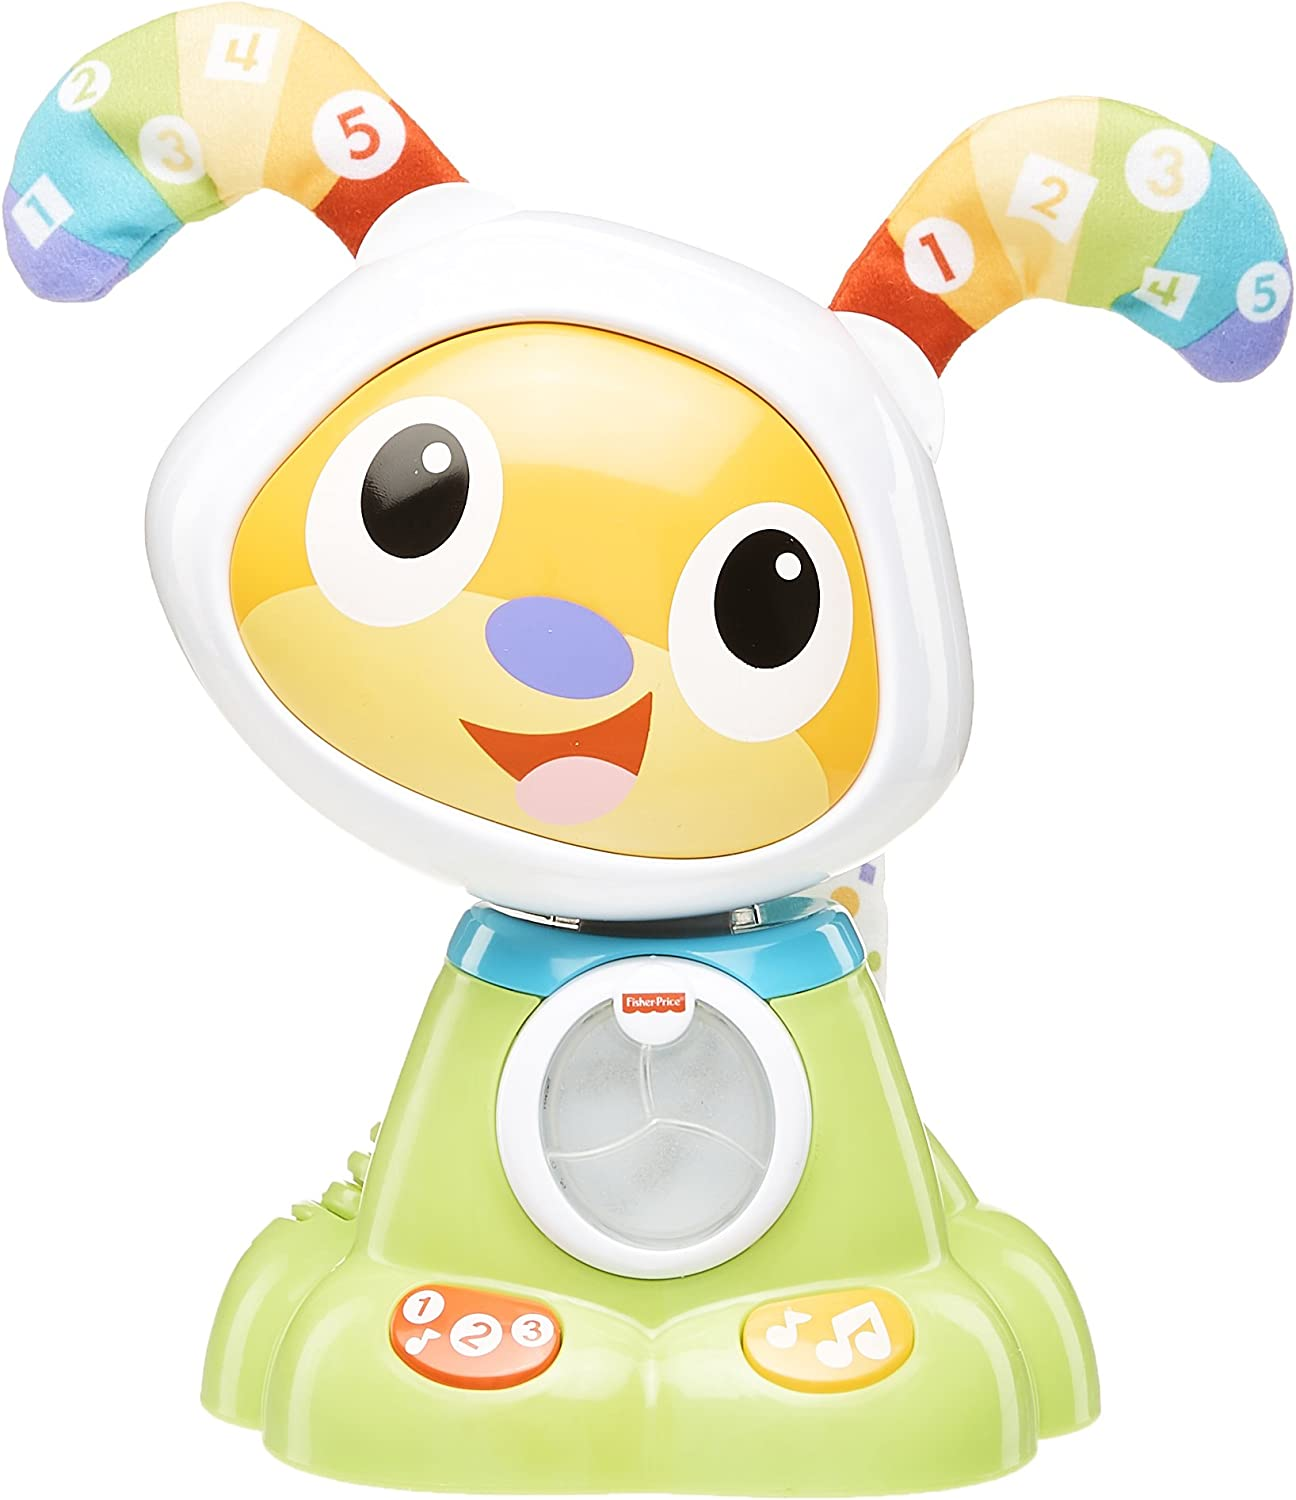 FisherPrice Dance & Move BeatBowWow by FisherPrice